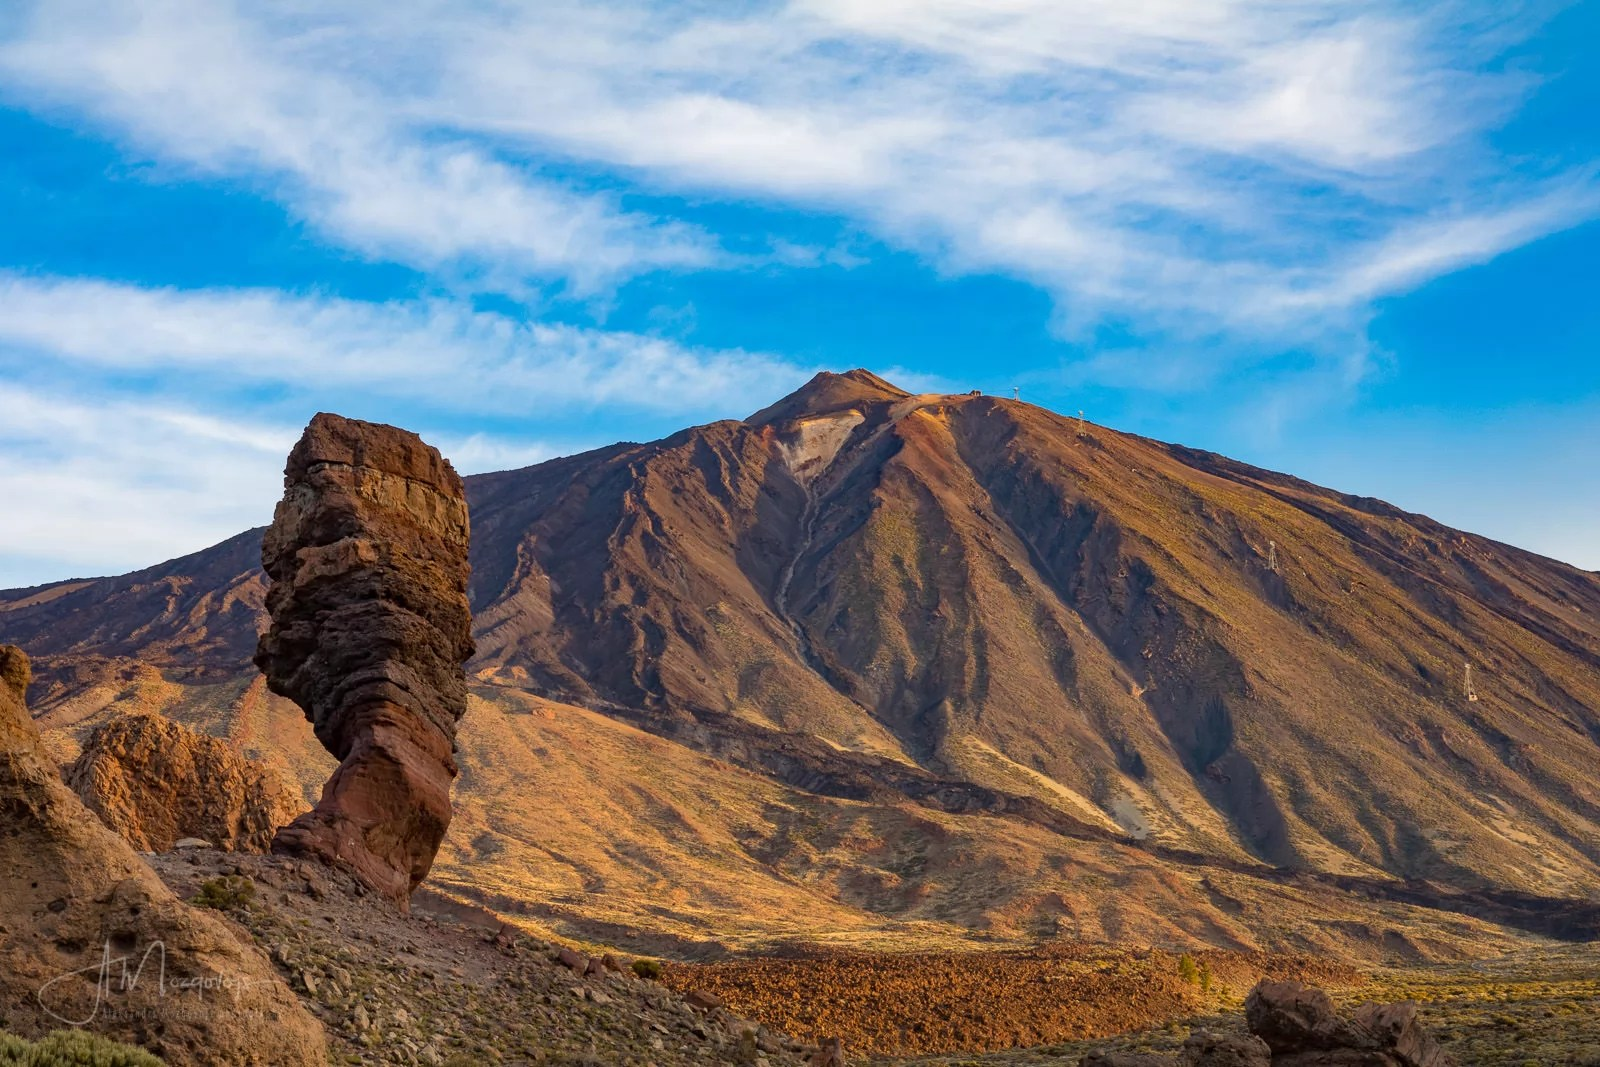 Classic View of Teide